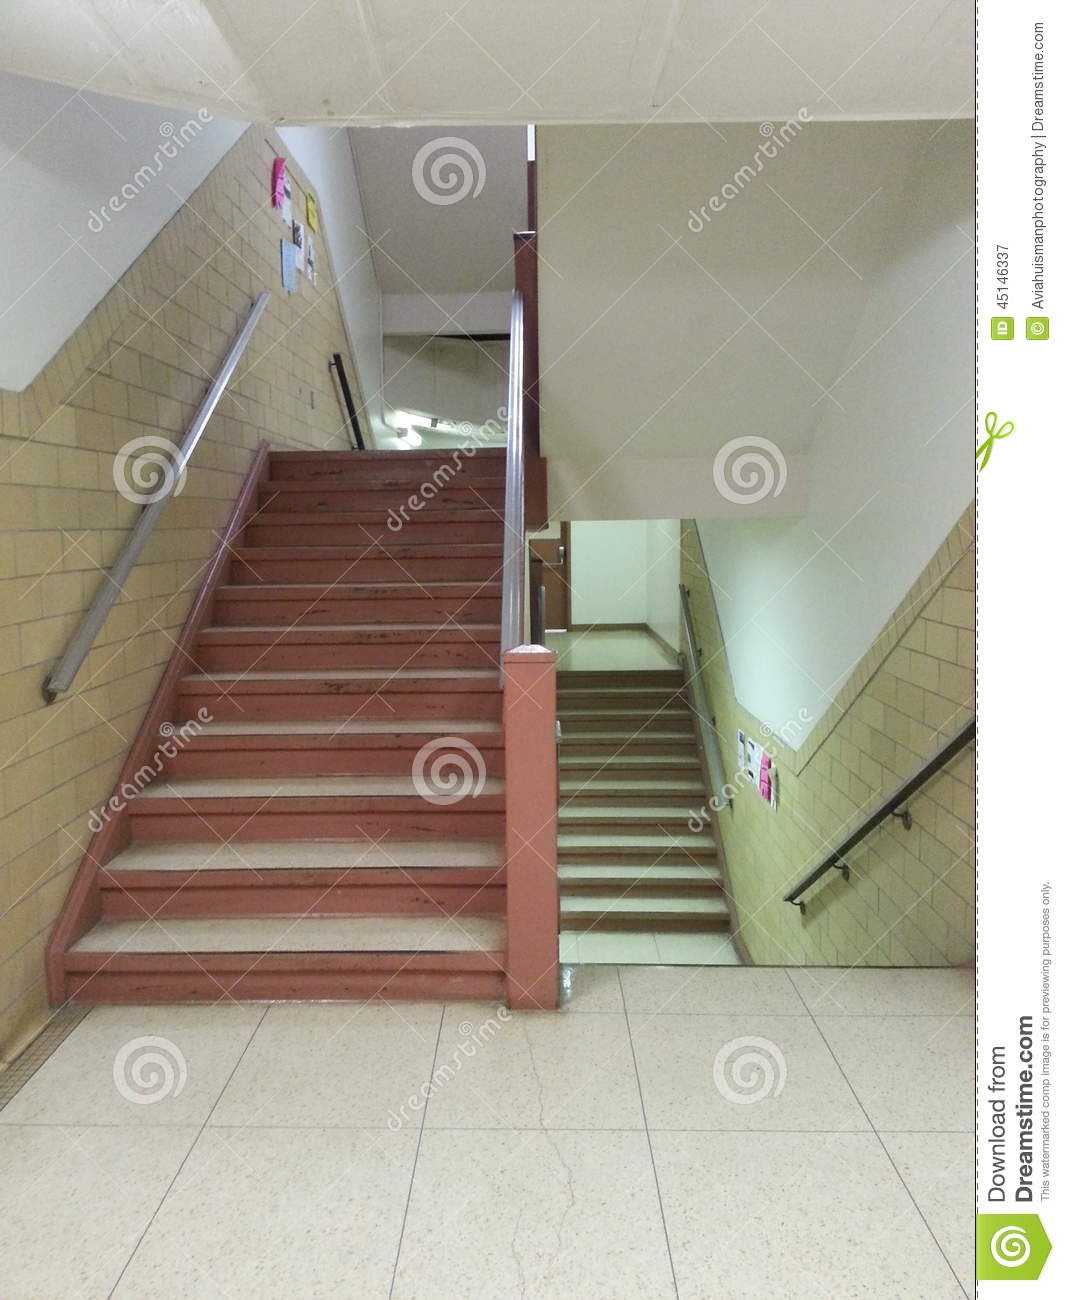 Stairwell In A Large Public Bulging With Stairs Going Up And Down To Other  Floors. The Floor Is Covered In Linoleum Ant There Are Handrails For Safety.